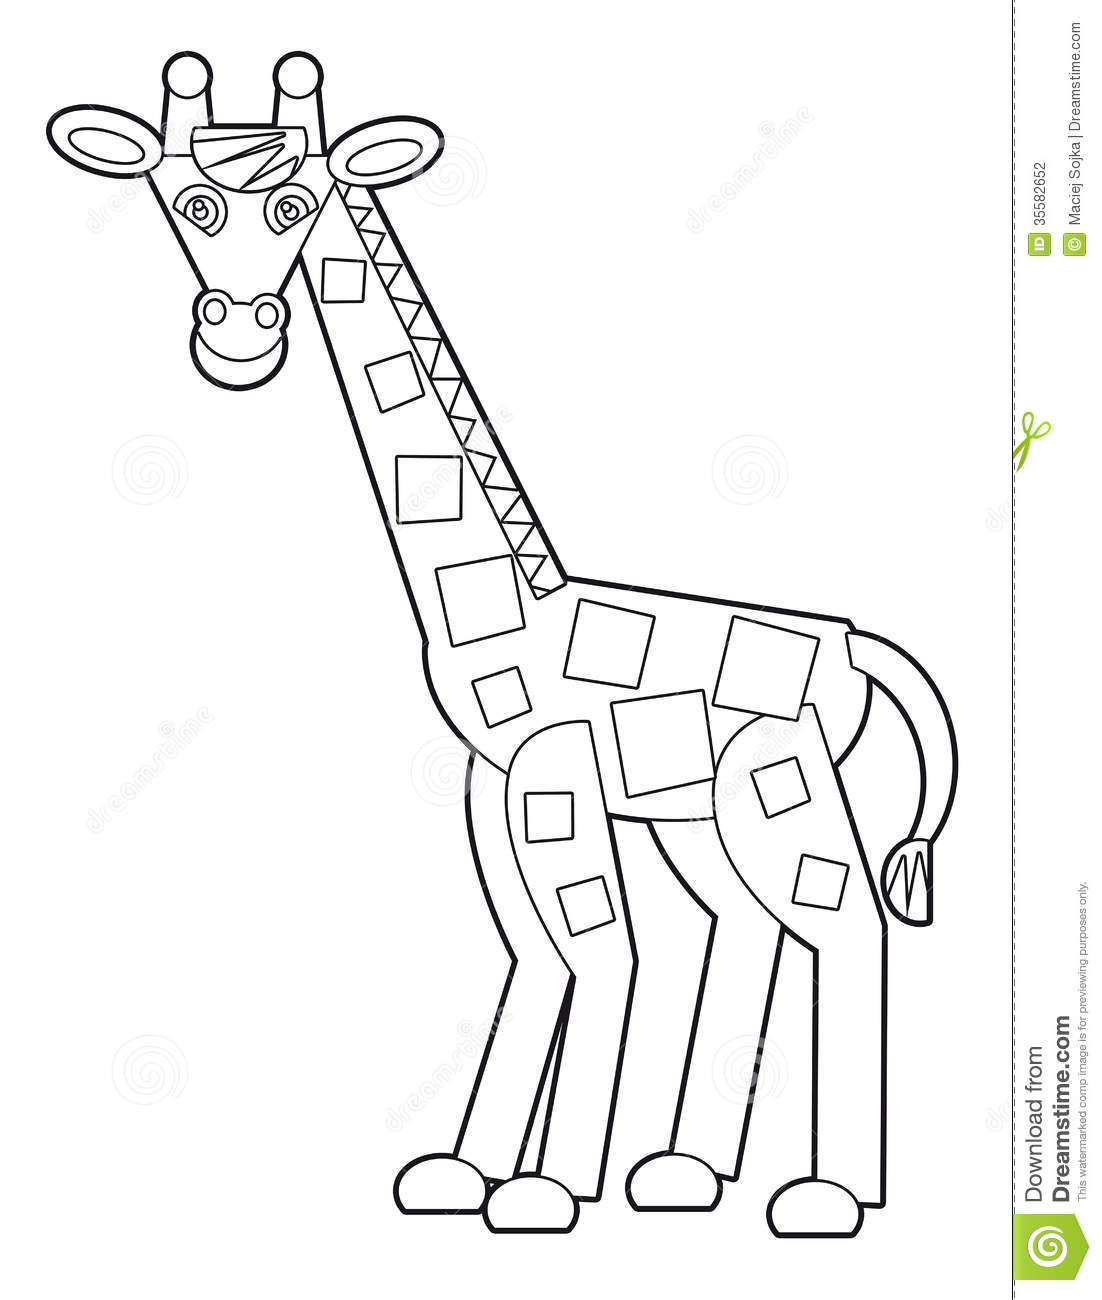 royalty free stock photo download cartoon wild animal coloring page for the children - Animal Coloring Pages Children